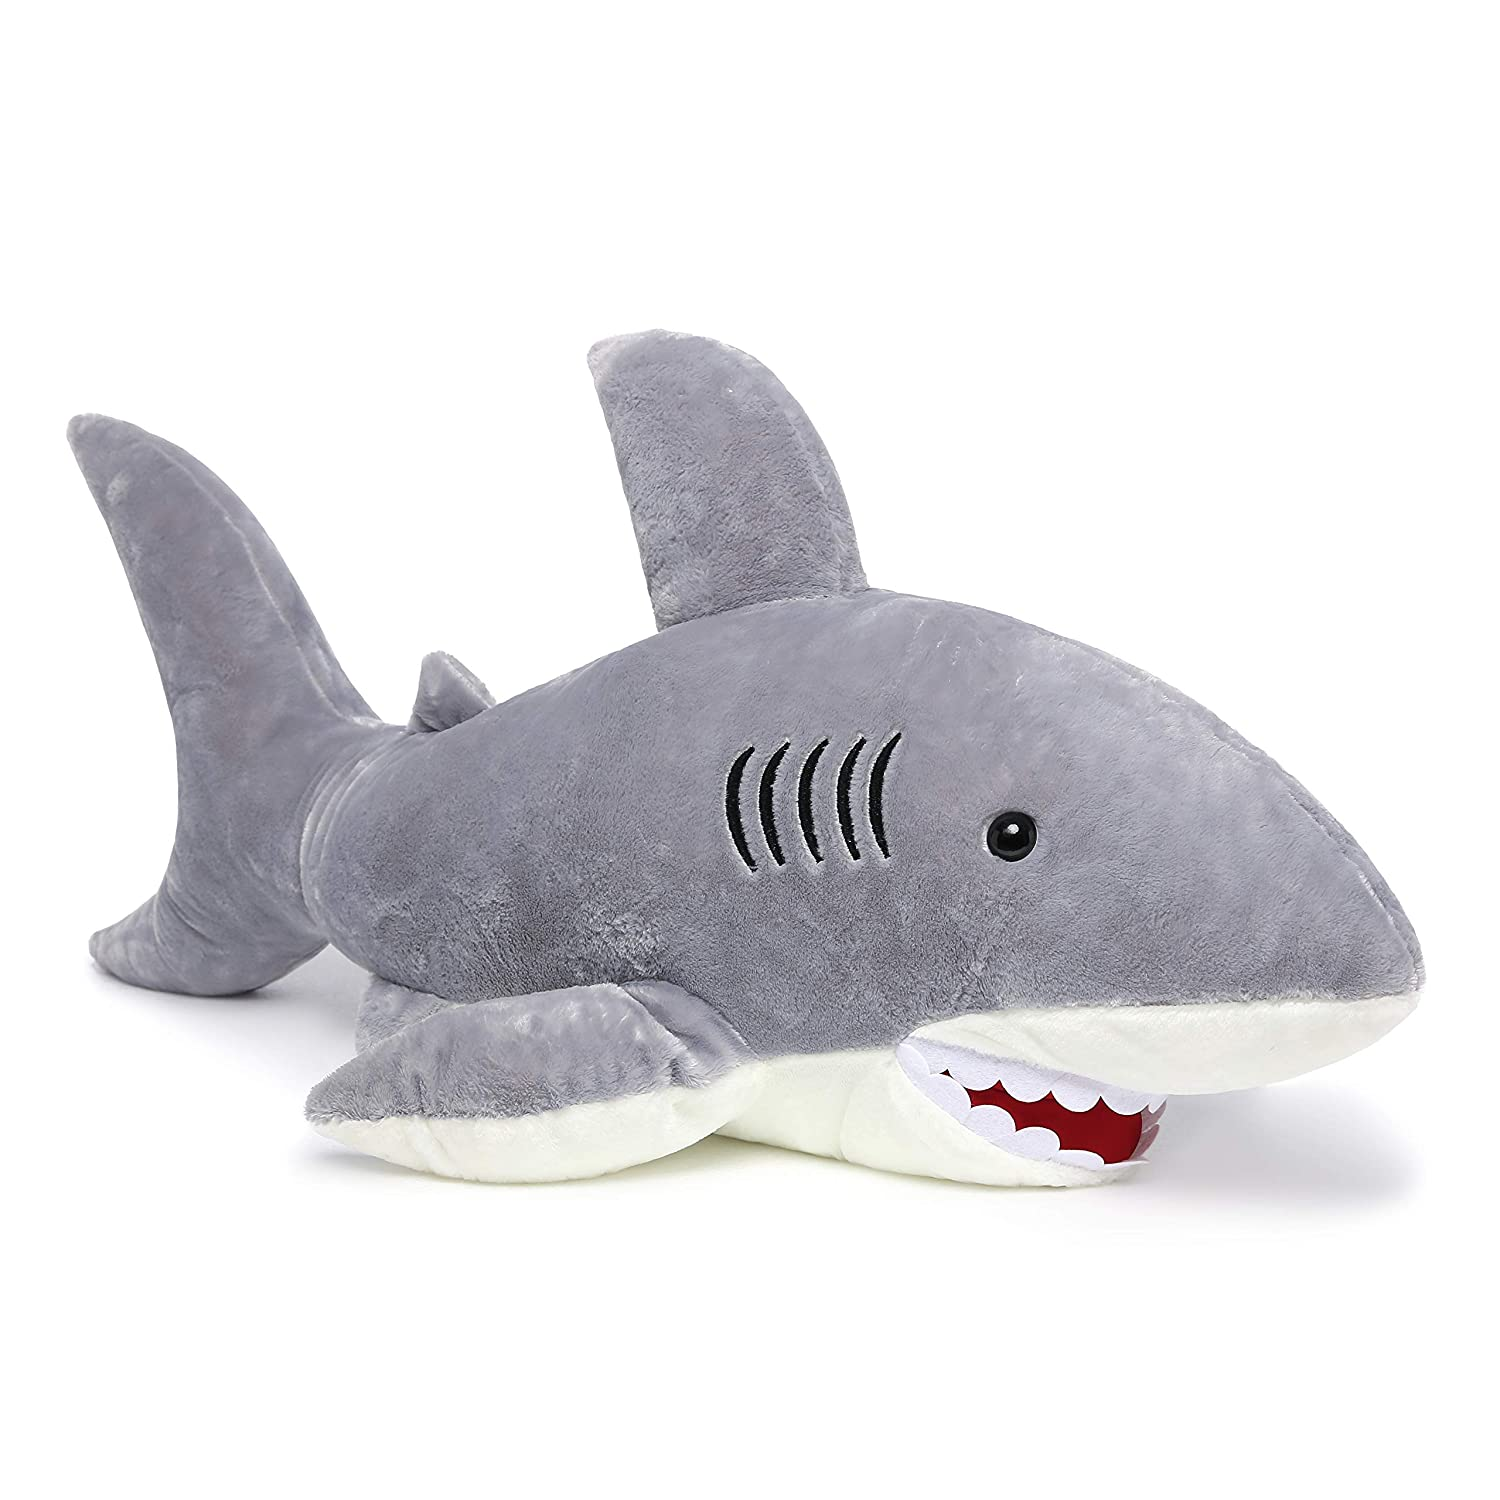 Amazon Com Morismos Giant Shark Stuffed Animal Gray Shark Plush